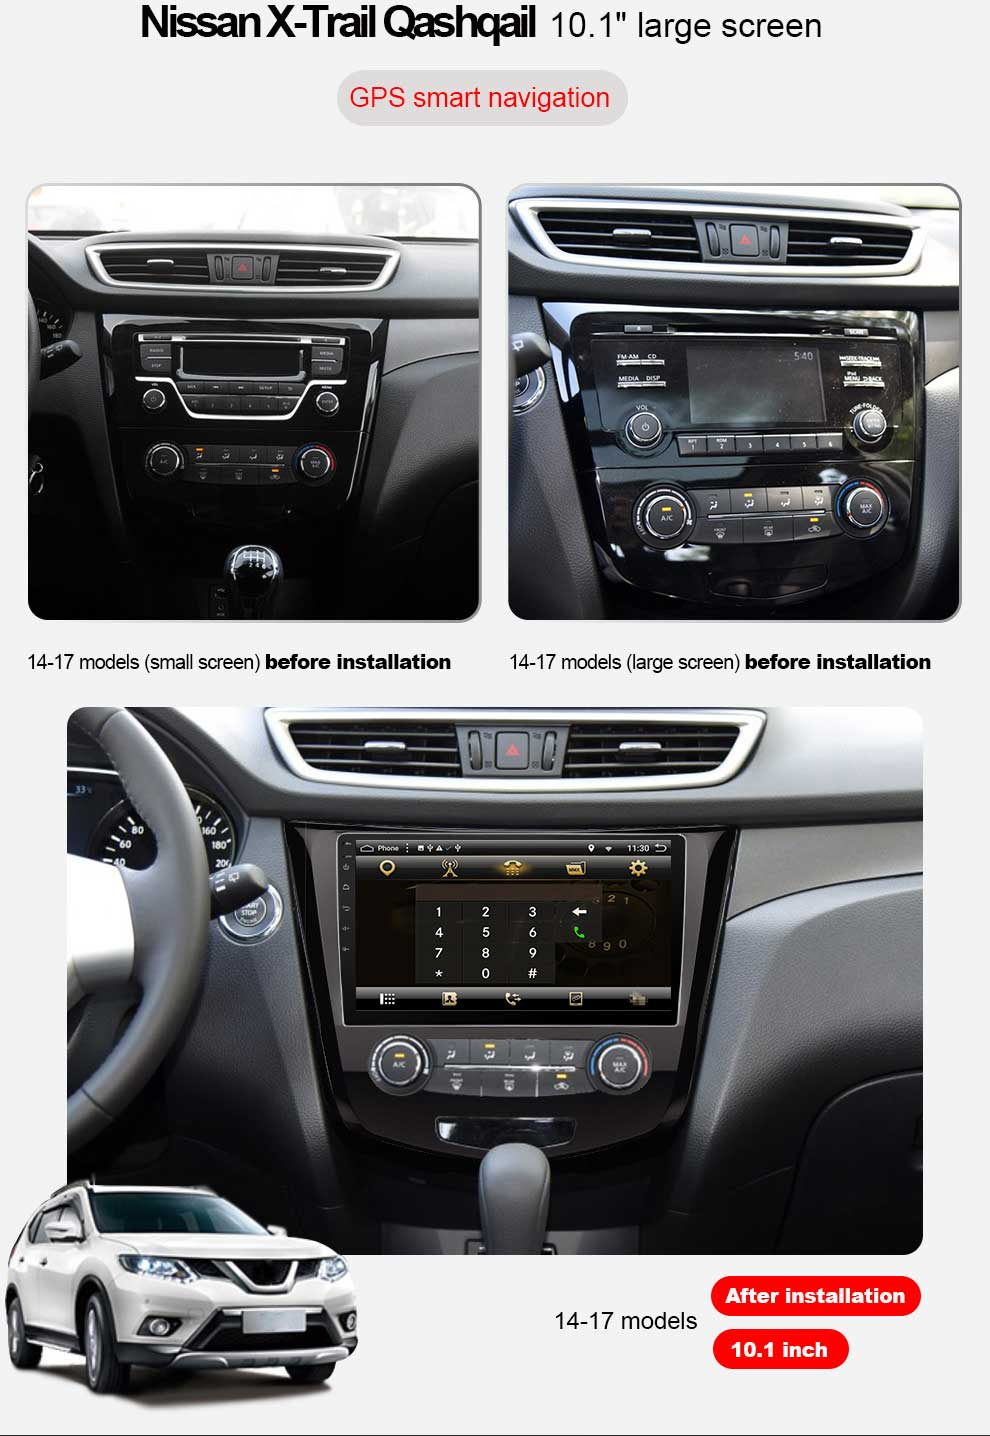 Perfect Eunavi 2 din 10.1 inch quad core Android 7.1 Multimedia Car Radio Stereo Player for Nissan Qashqai 2016 GPS Navigation Head unit 4